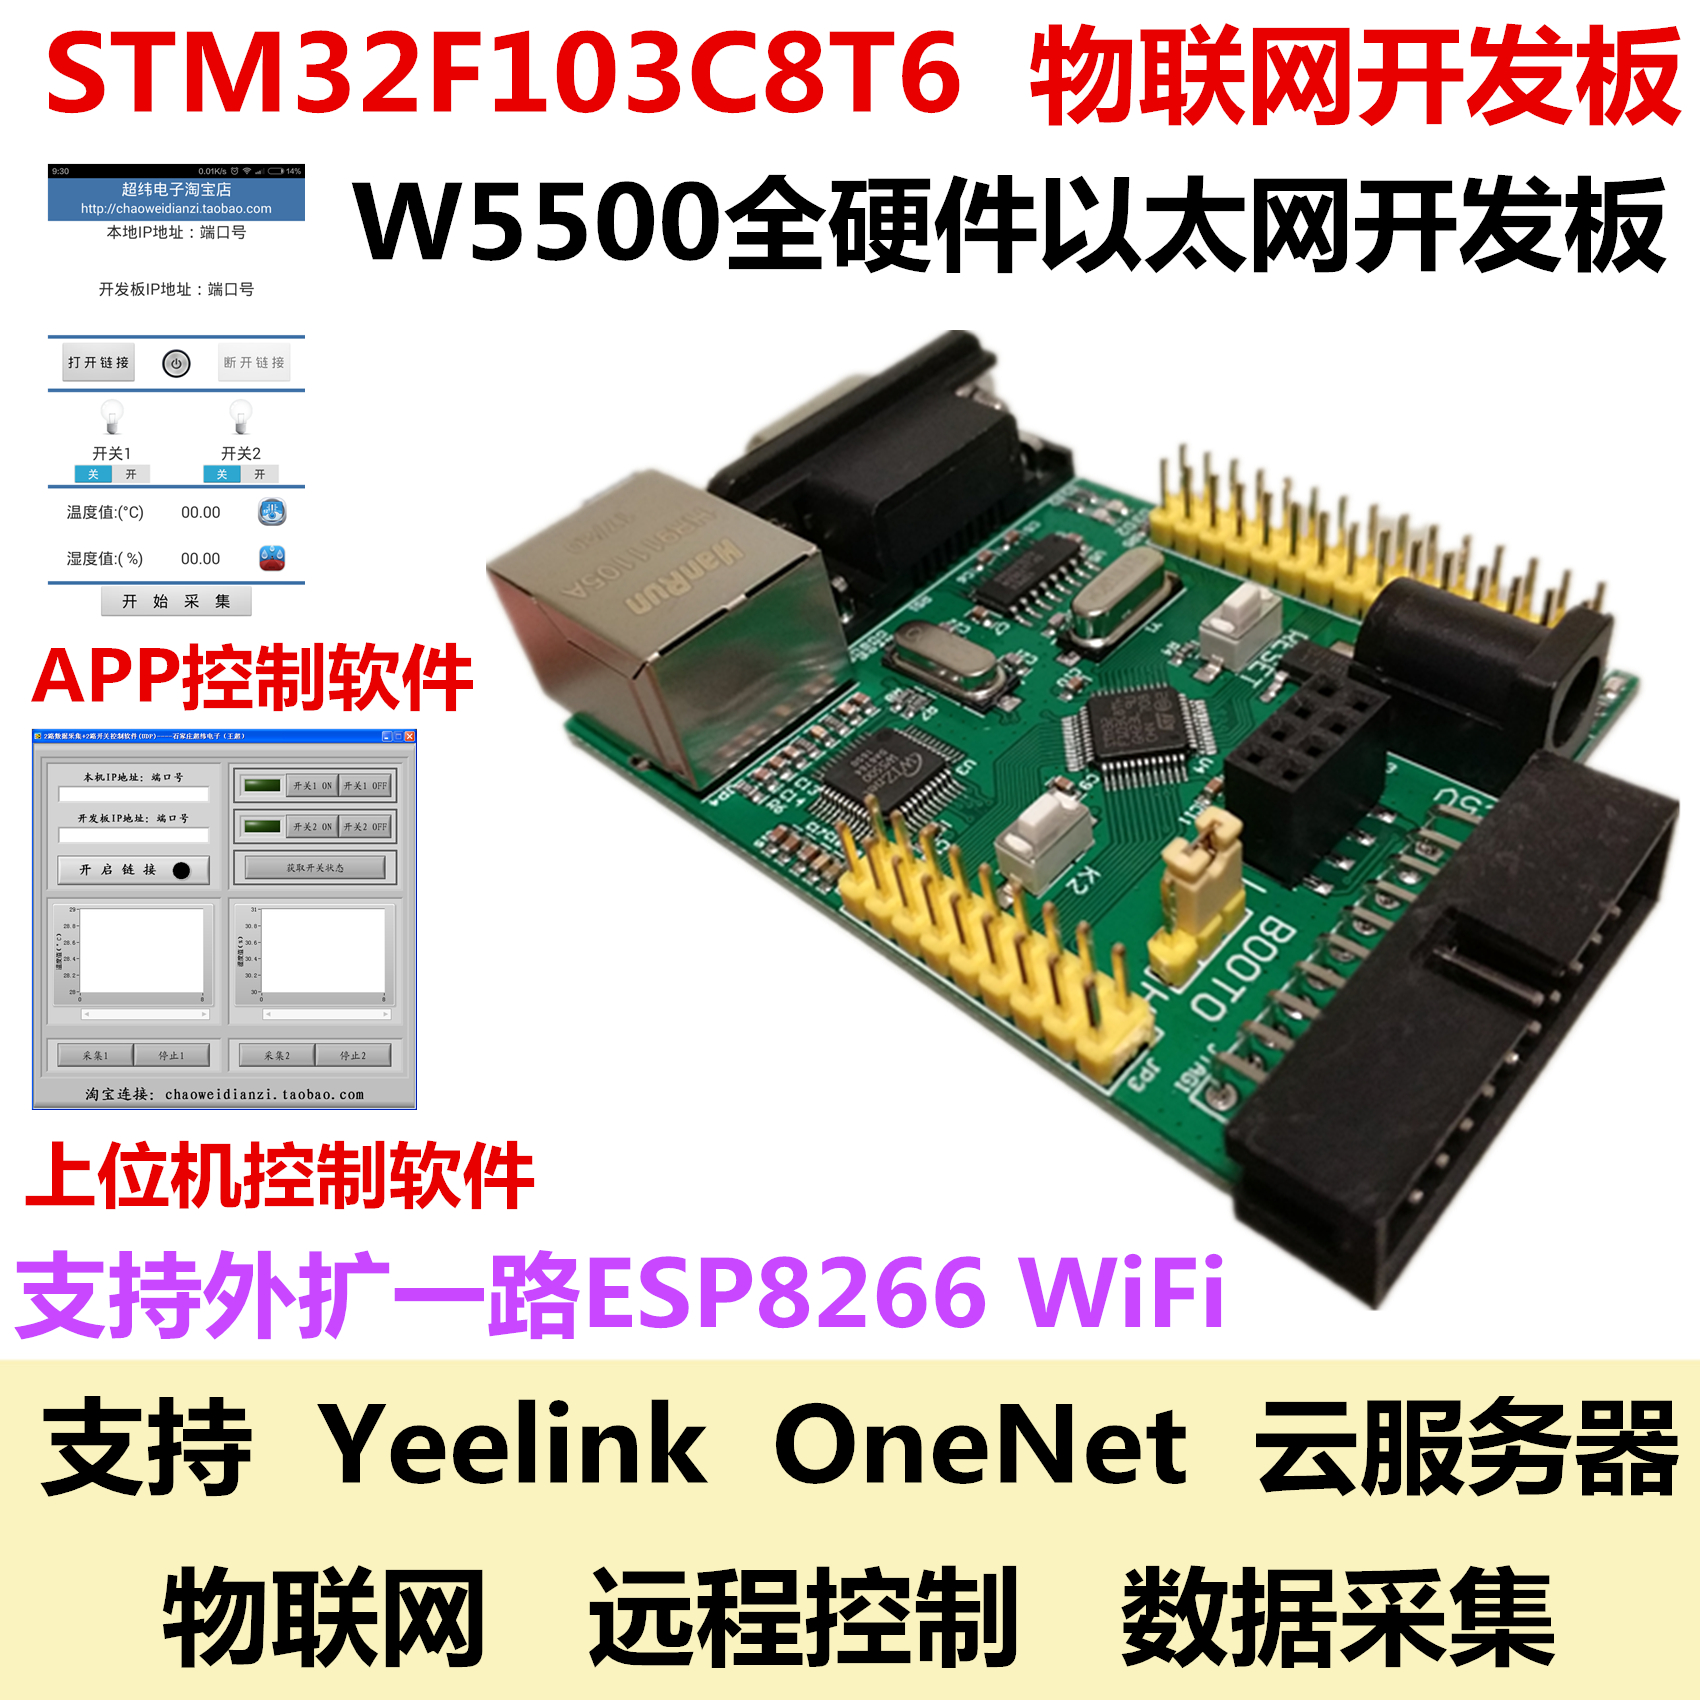 Internet of Things, WiFi STM32 W5500 Development Board, Hardware Ethernet Module, Remote Control Cloud Service gprs gsm sms development board communication module m26 ultra sim900 stm32 internet of things with positioning